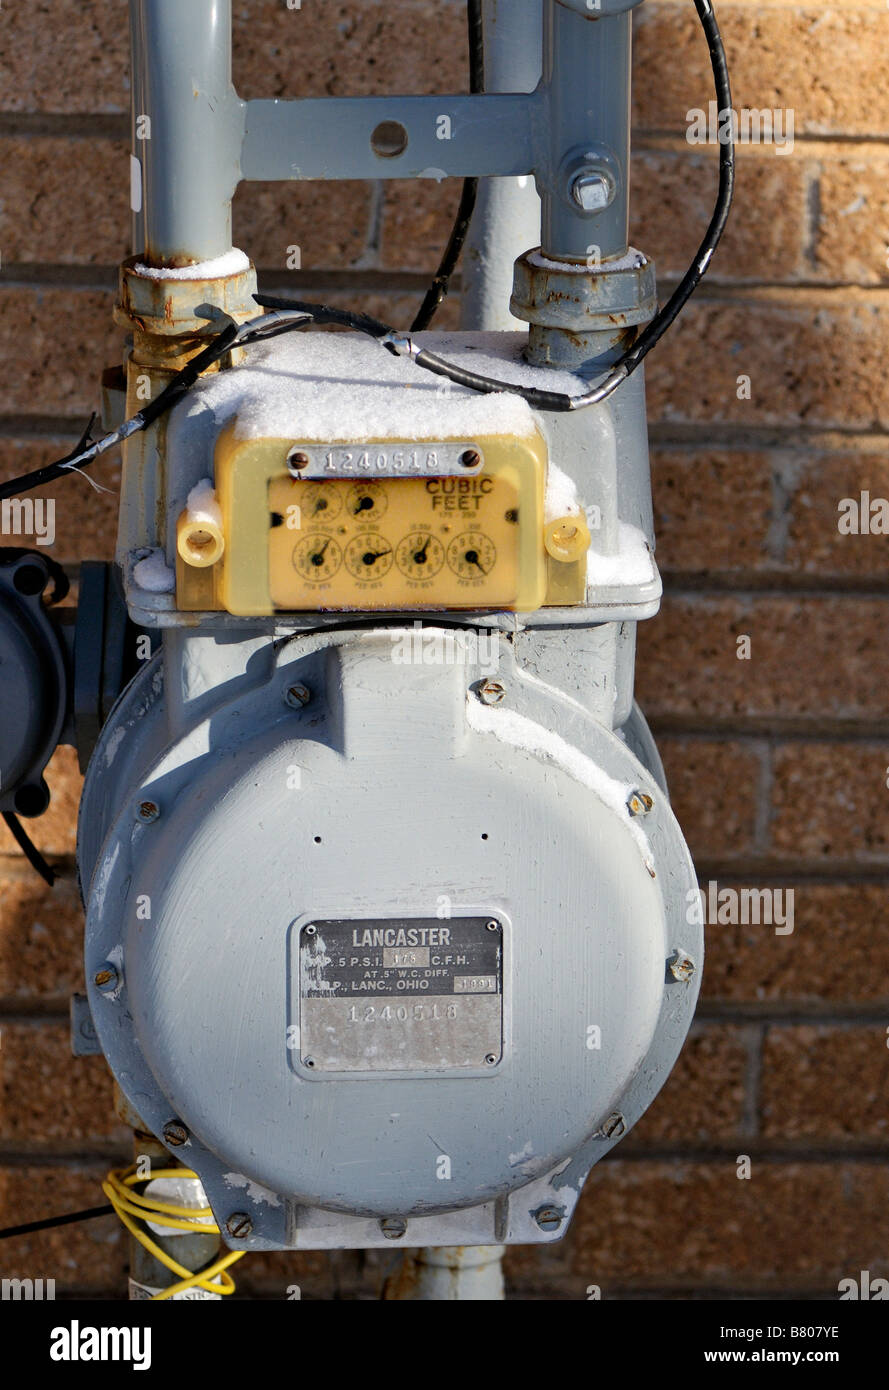 Home Natural Gas Meter Stock Photos Electrical Wiring Residential Usa A Sits Next To Oklahoma City